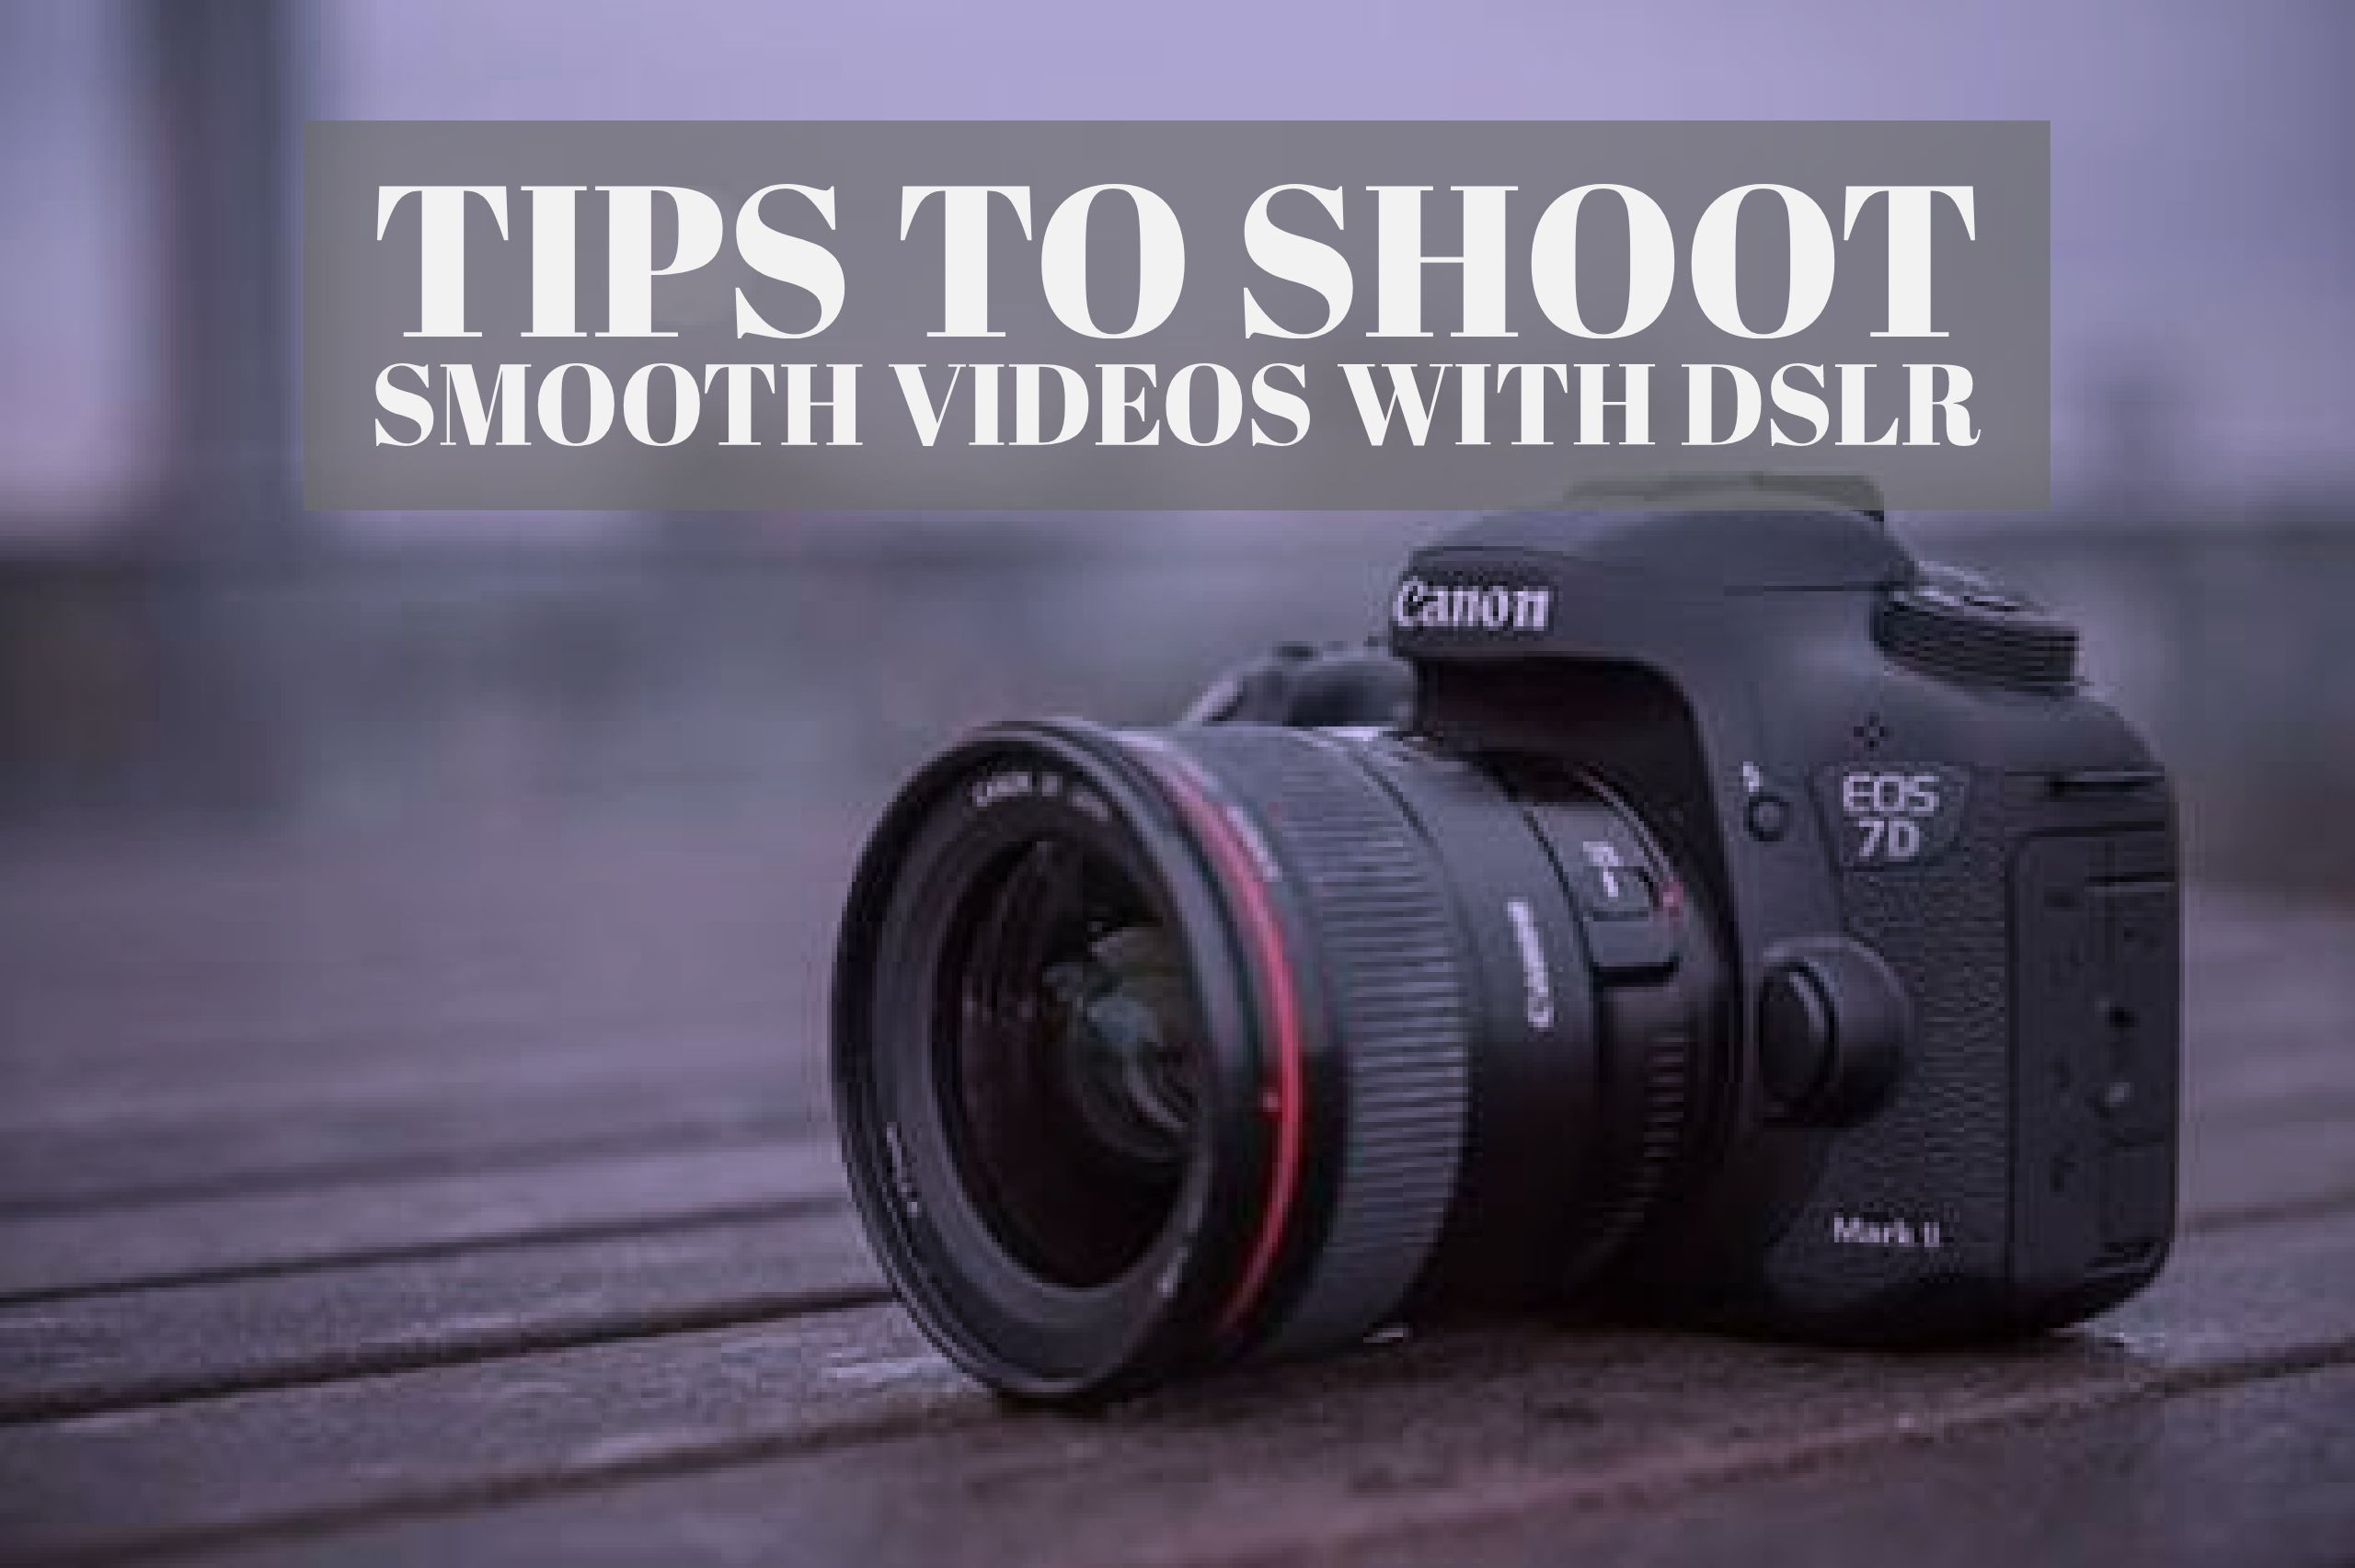 tips-to-shoot-smooth-videos-using-dslr